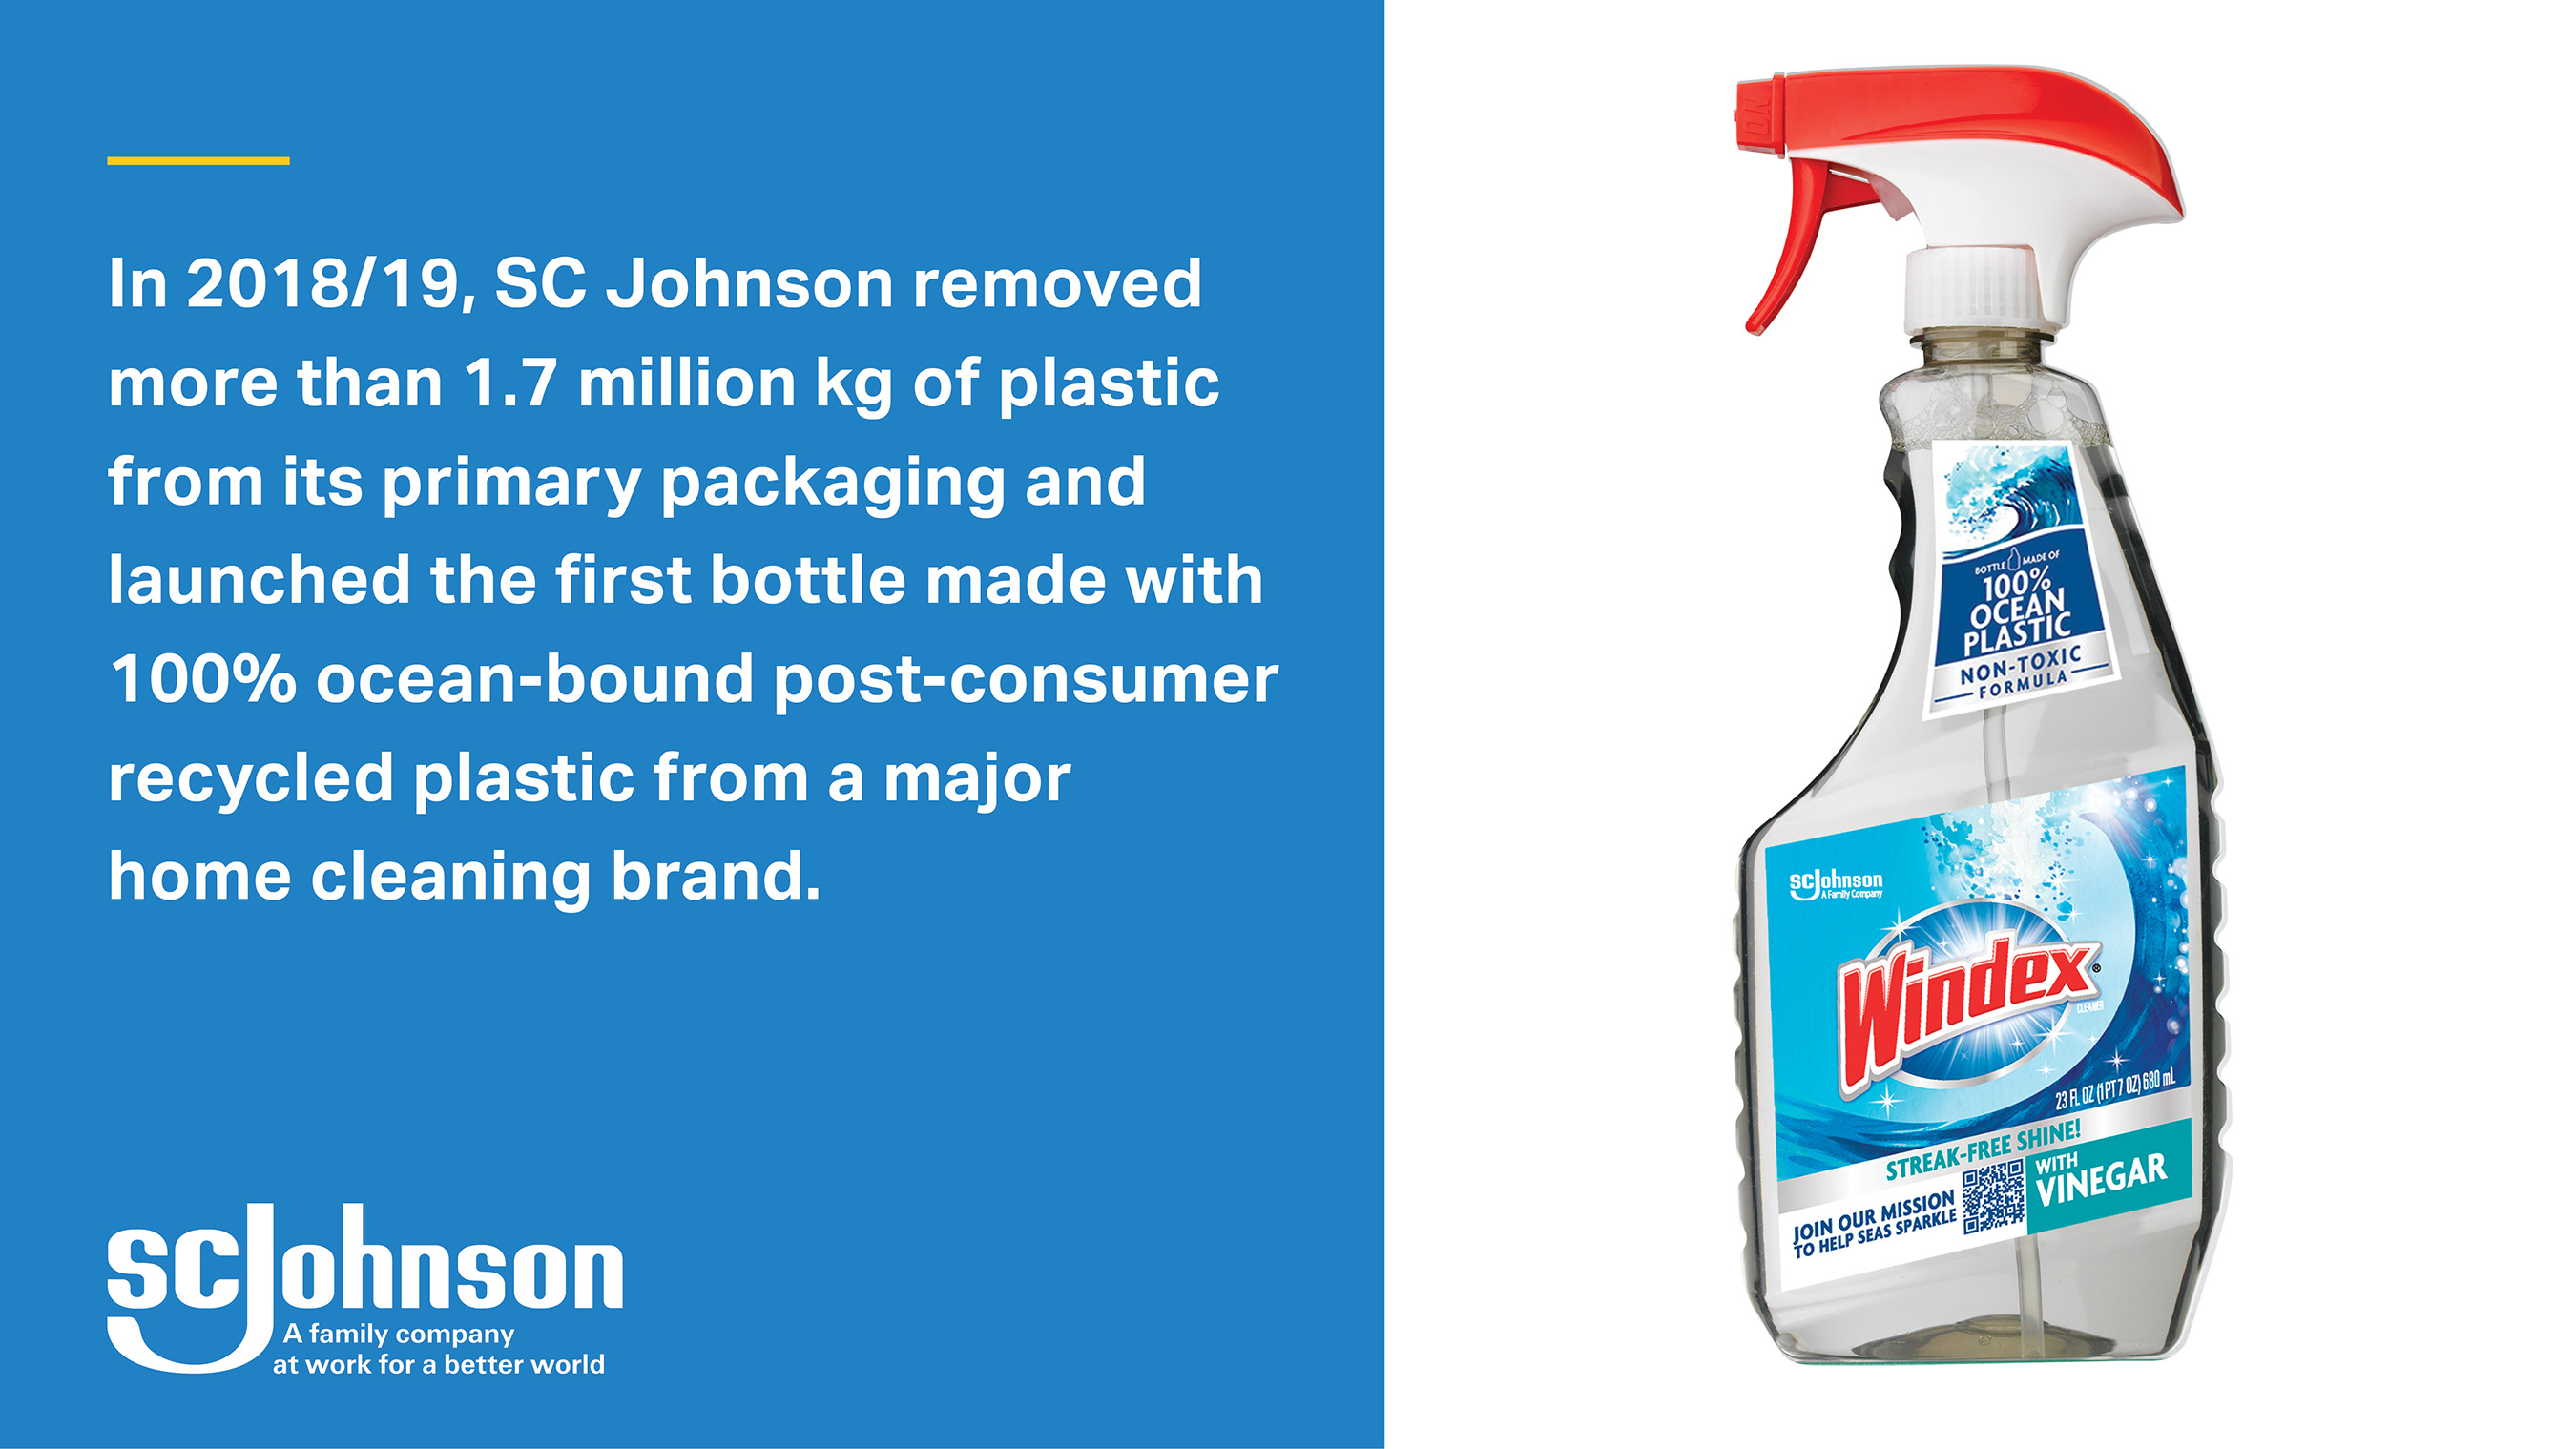 SC Johnson continues efforts to minimize plastic waste by designing unnecessary packaging out of its products.